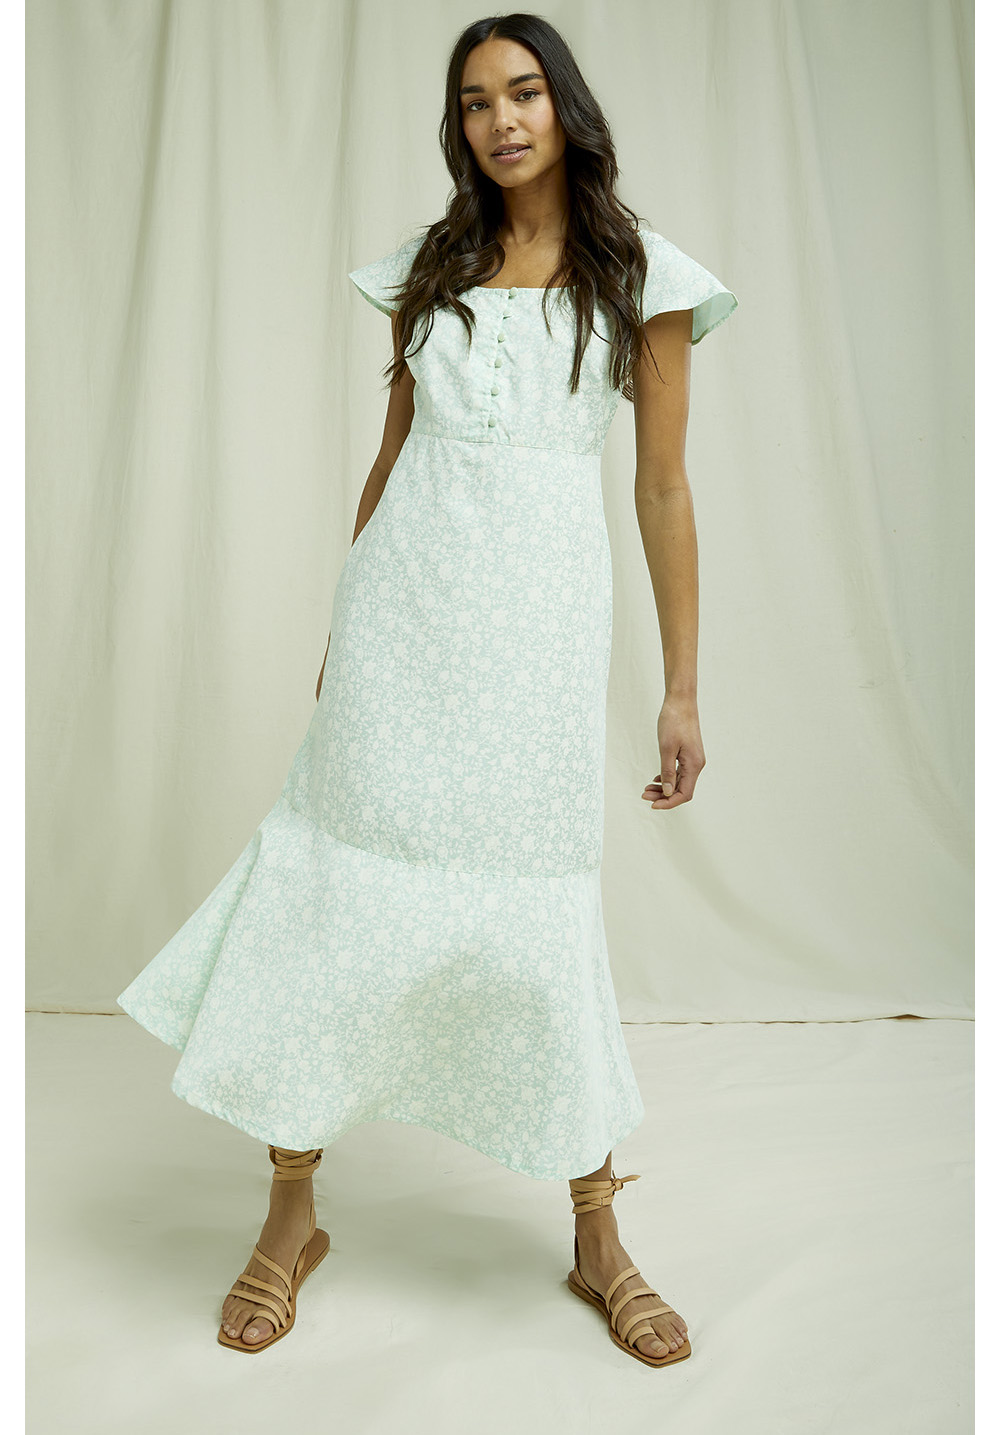 Pippa Silhouette Floral Dress